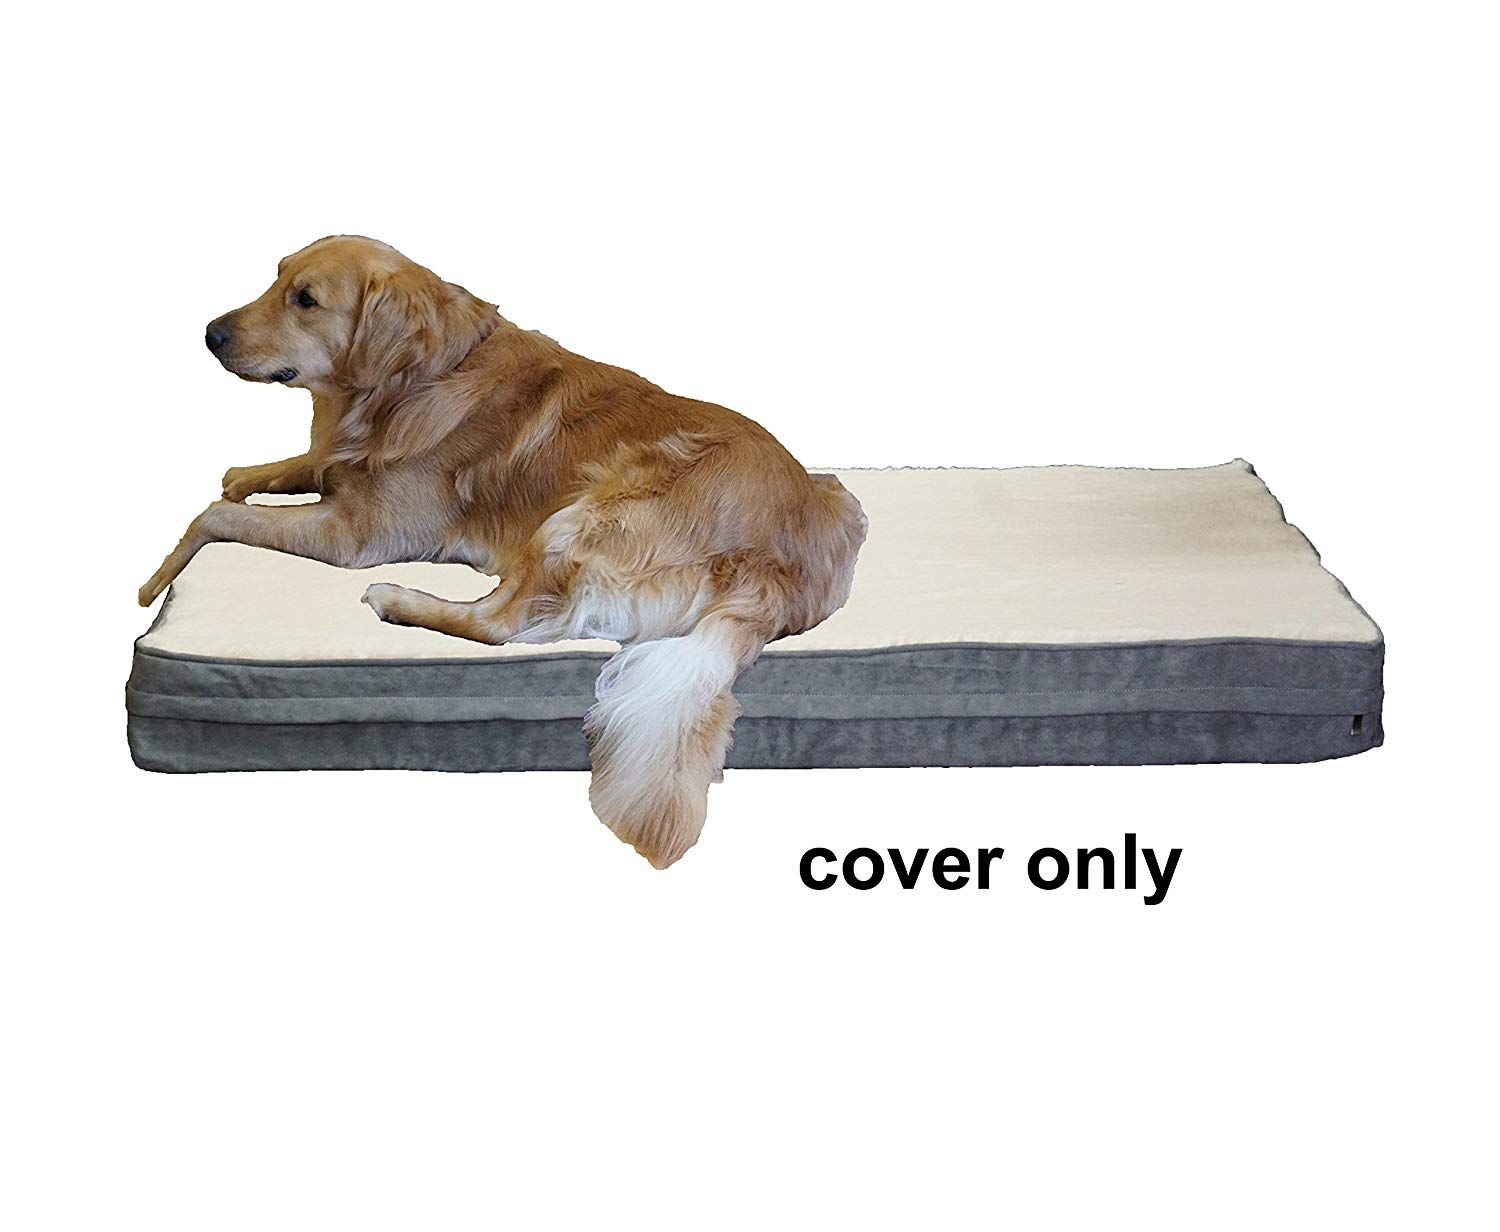 Never Done A Zipper But This Seems Easy Enough Diy Dog Bed Pillow Diy Dog Pillow Diy Dog Bed